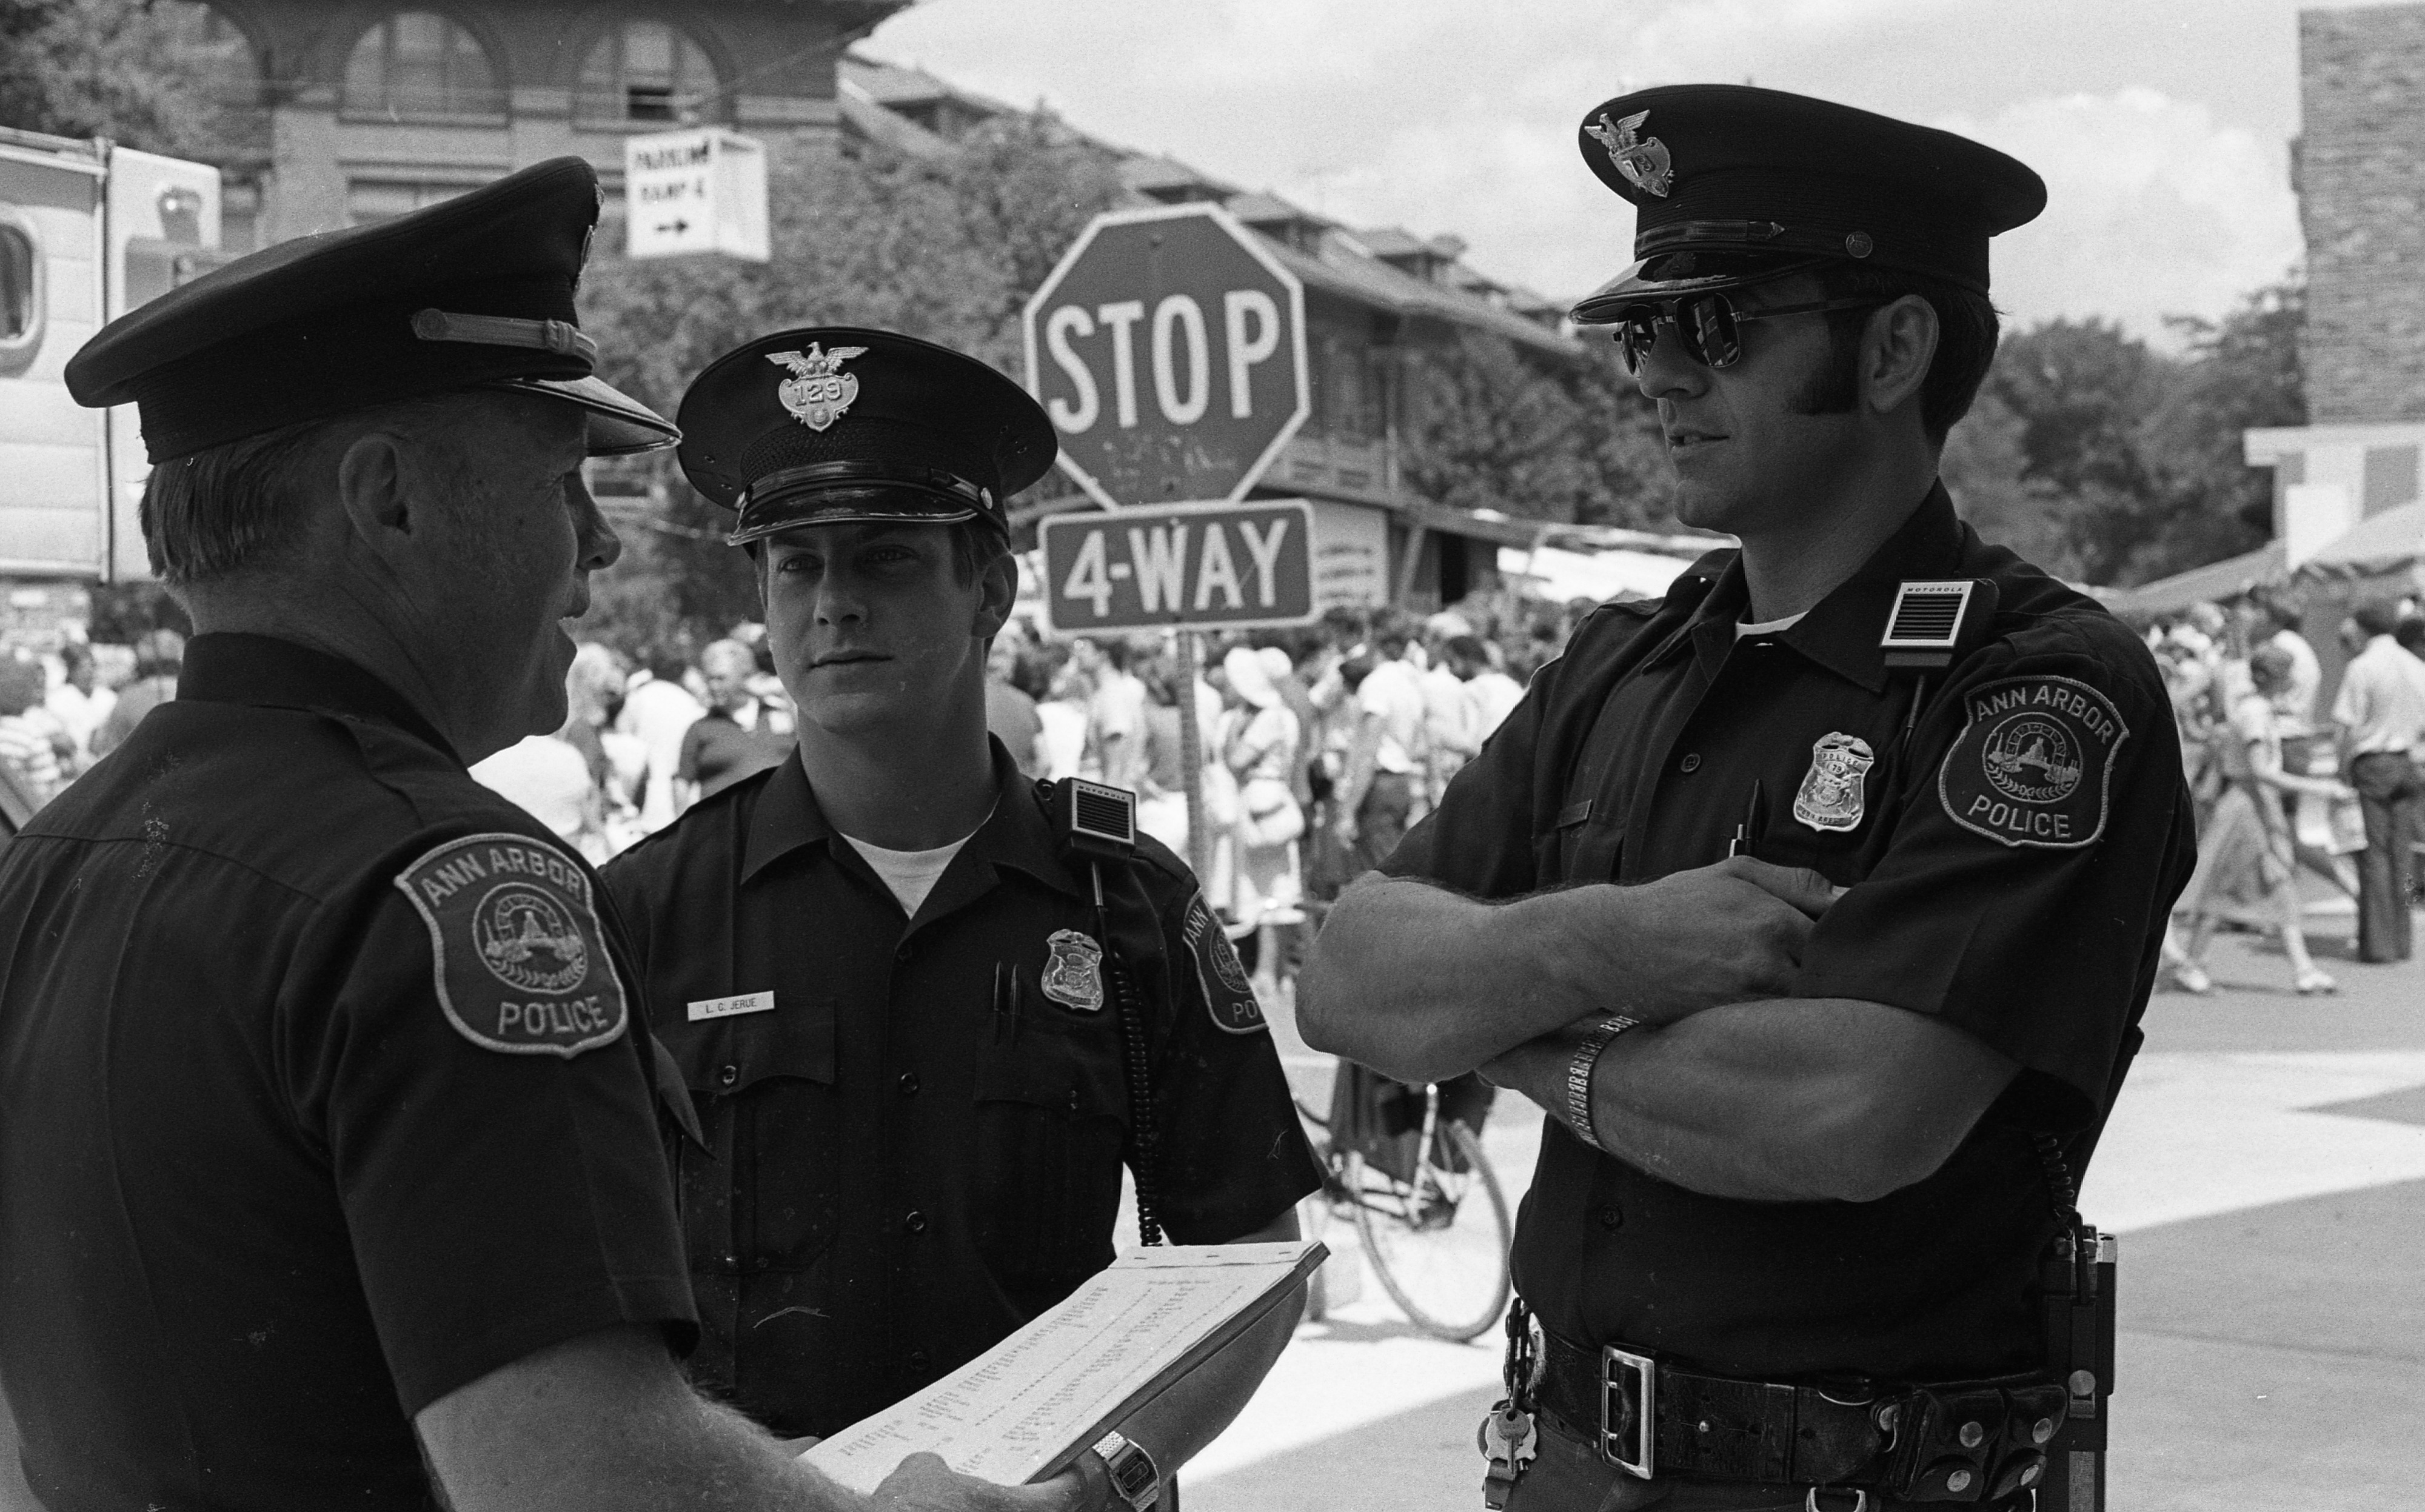 Ann Arbor Police Patrol Art Fair, July 1980 image